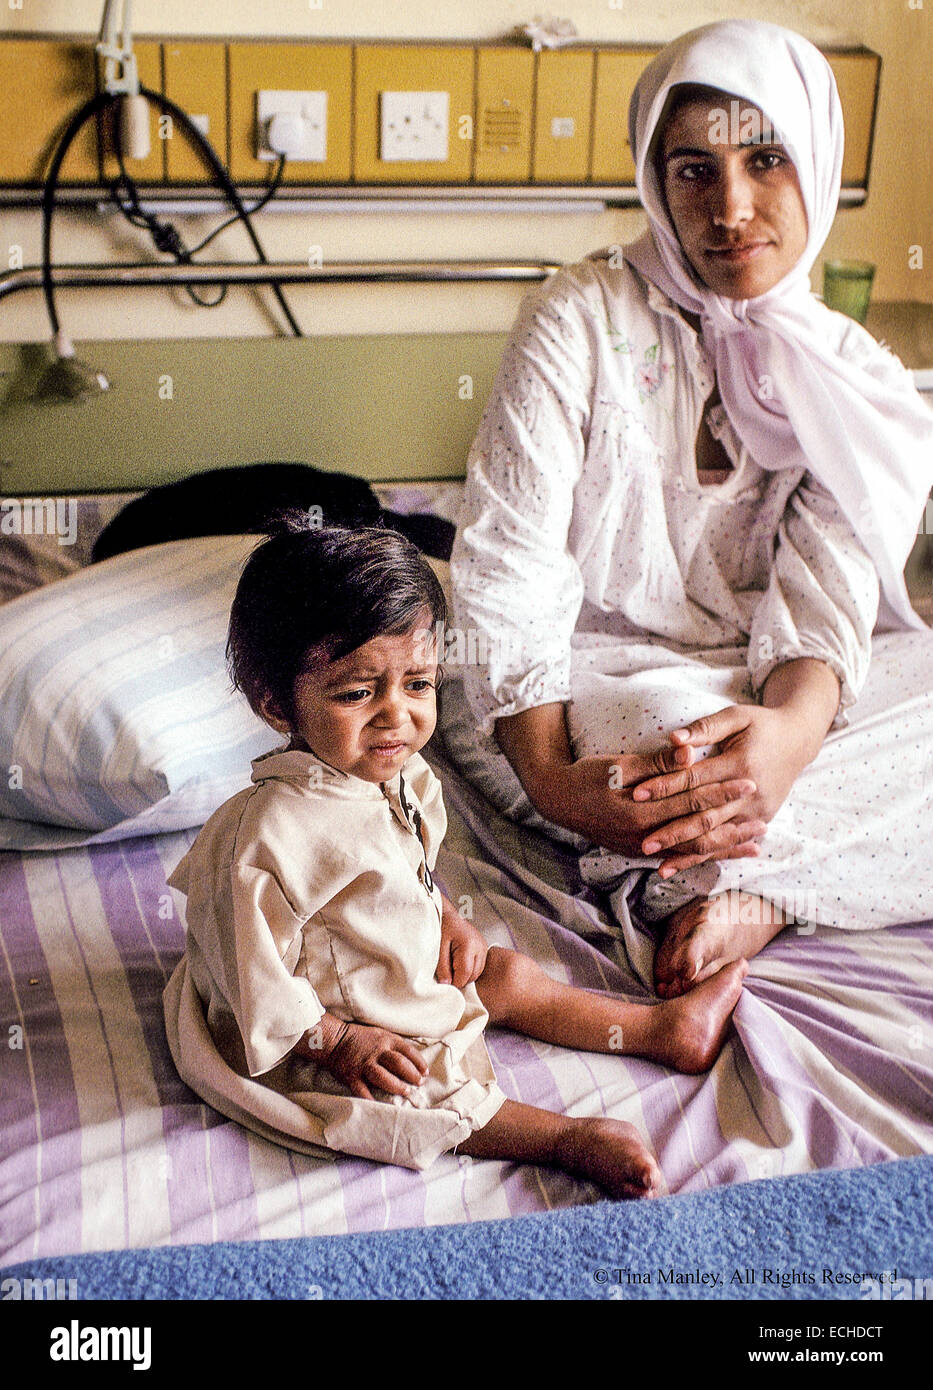 Muslim mother and baby in Saddam Central Teaching Hospital  in Baghdad, Iraq.  More babies are suffering from diarrhea - Stock Image